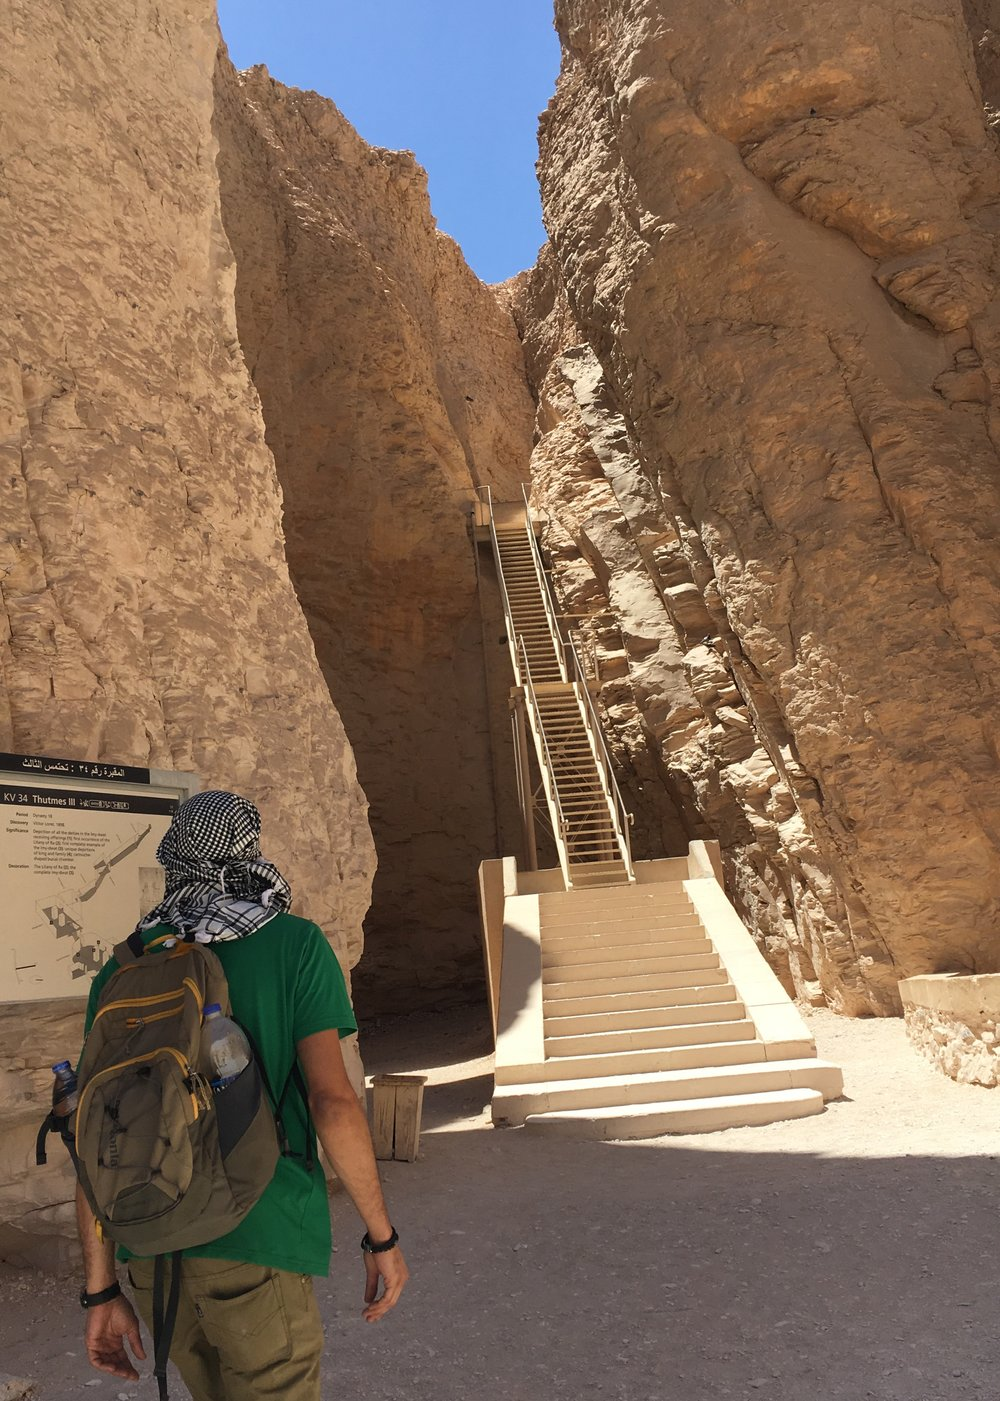 You'd climb stairs like these to the entrance. Inside is another series of steep stairs and ramps. It's a workout for sure- and Ahmed and Mohamed toted around our heavy bags through all of it!